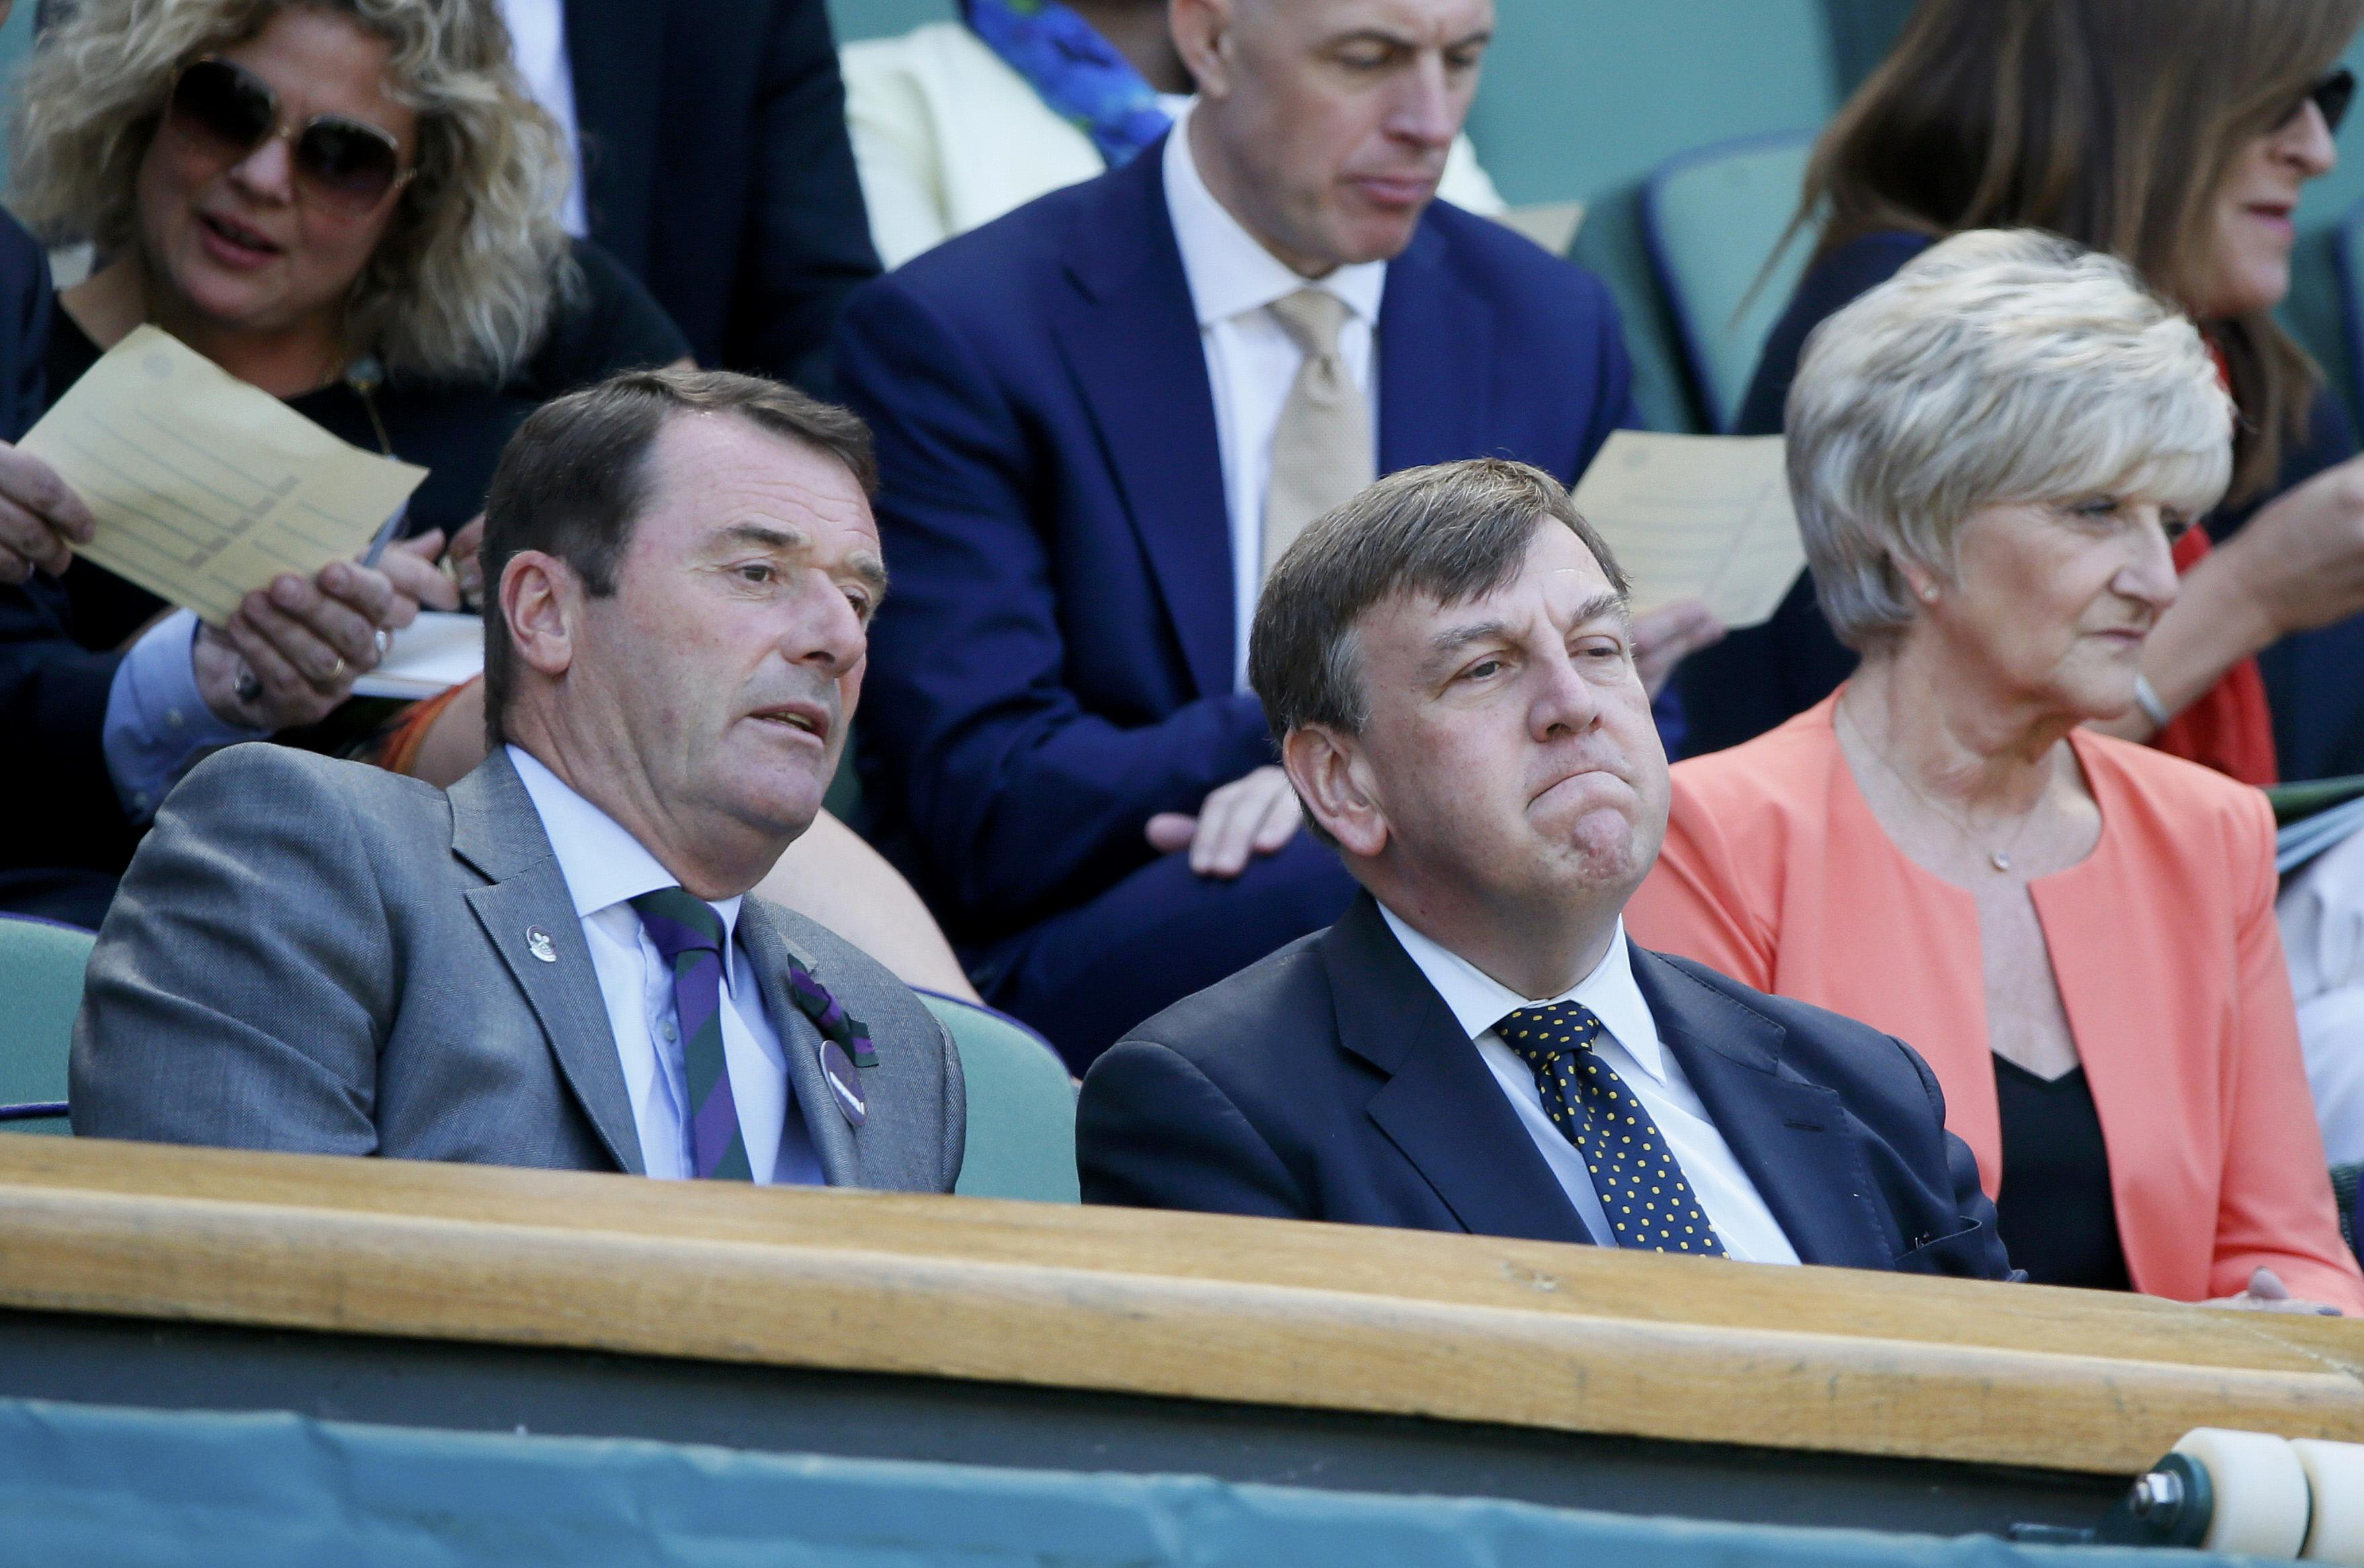 John Whittingdale (C), Secretary of State for Culture, Media and Sport on Centre Court at the Wimbledon Tennis Championships in London, July 9, 2015. REUTERS/Stefan Wermuth